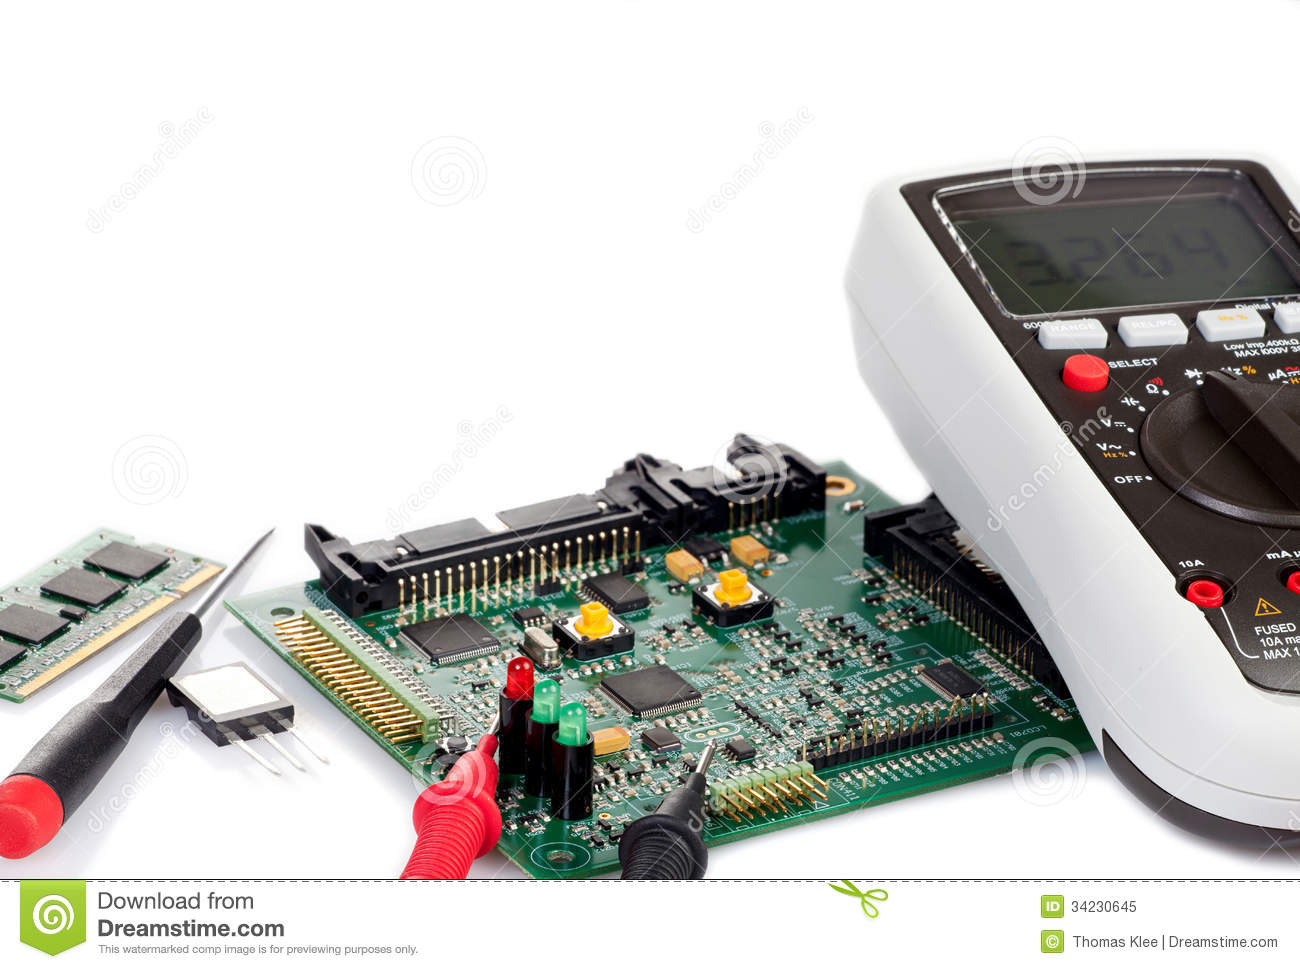 Digital Circuit Board Components Best Electrical Wiring Design Schematics Gerber Data Sandwichpcbwith Multimeter And A Royalty Free Stock Diagram